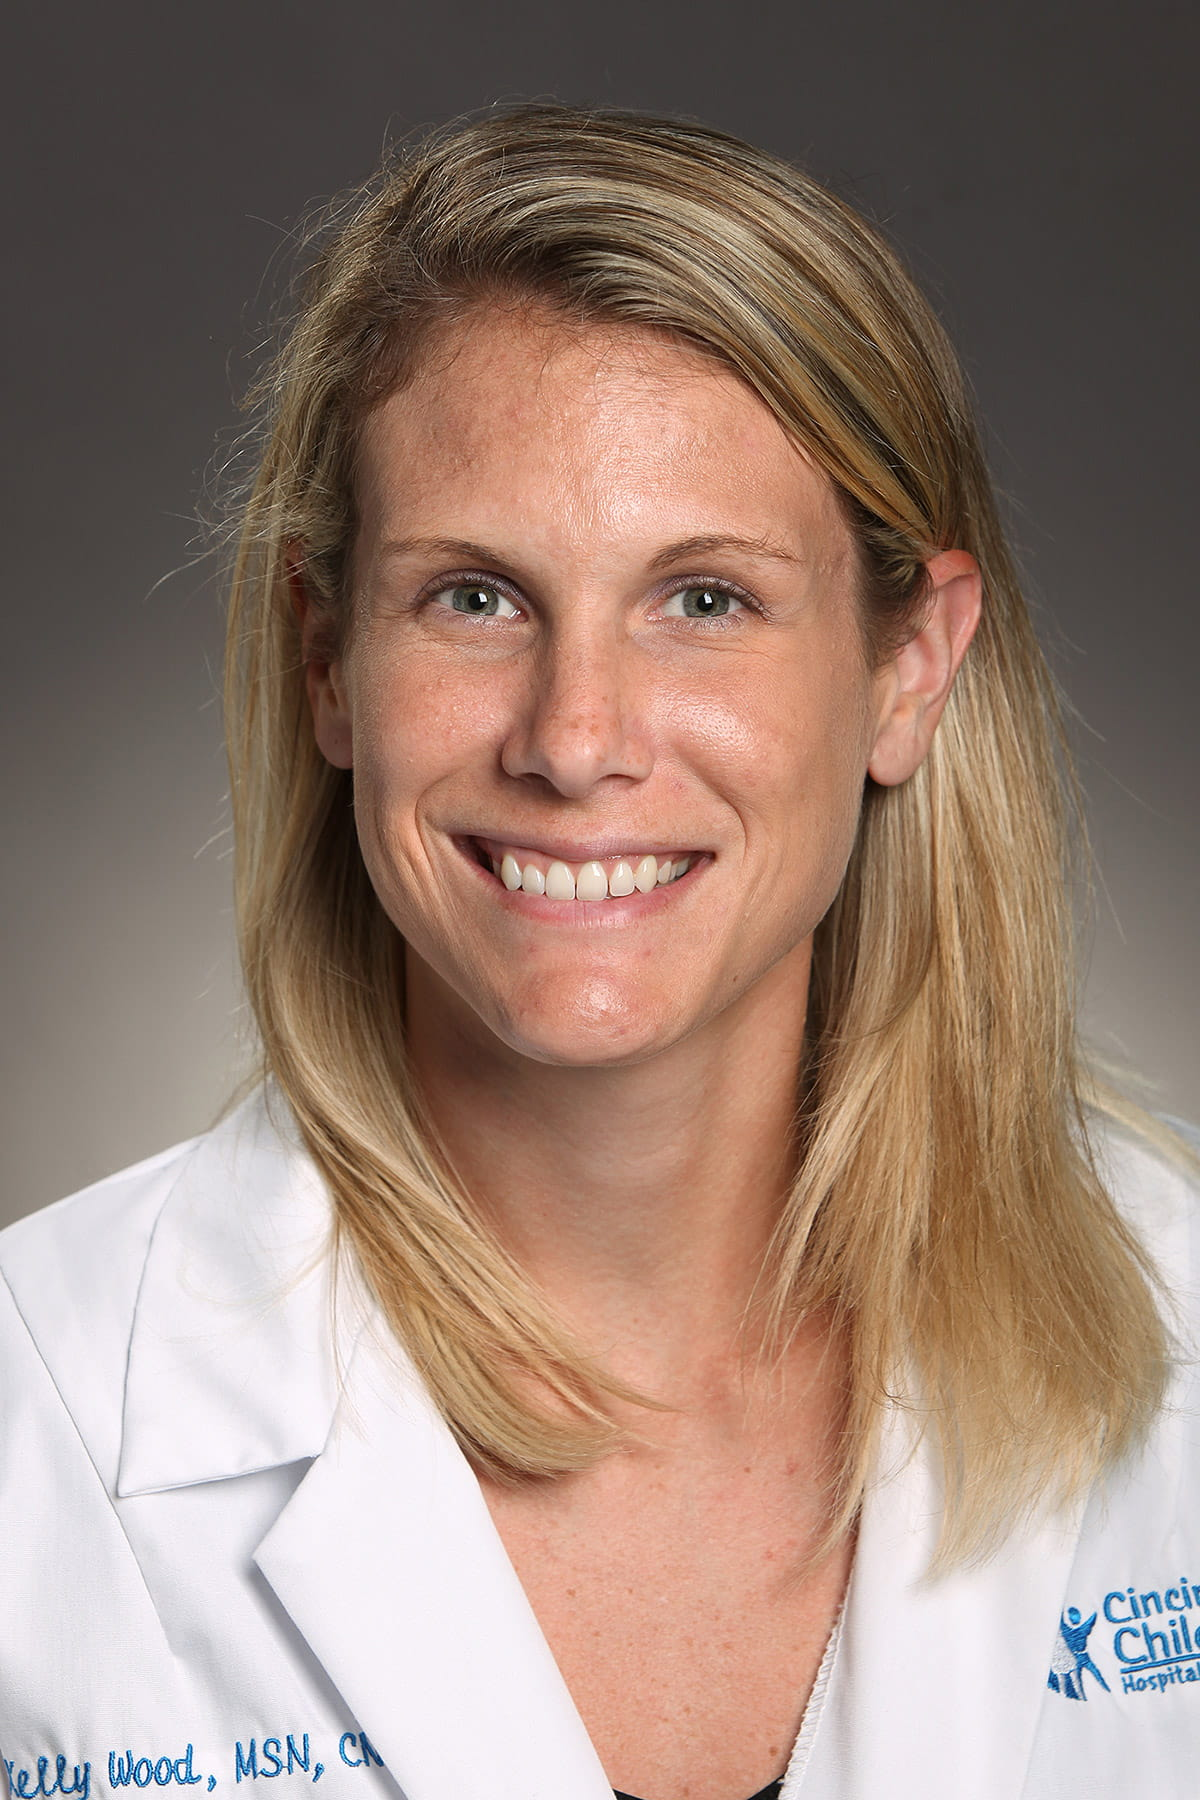 Kelly M. Wood, MSN, APRN, CNP